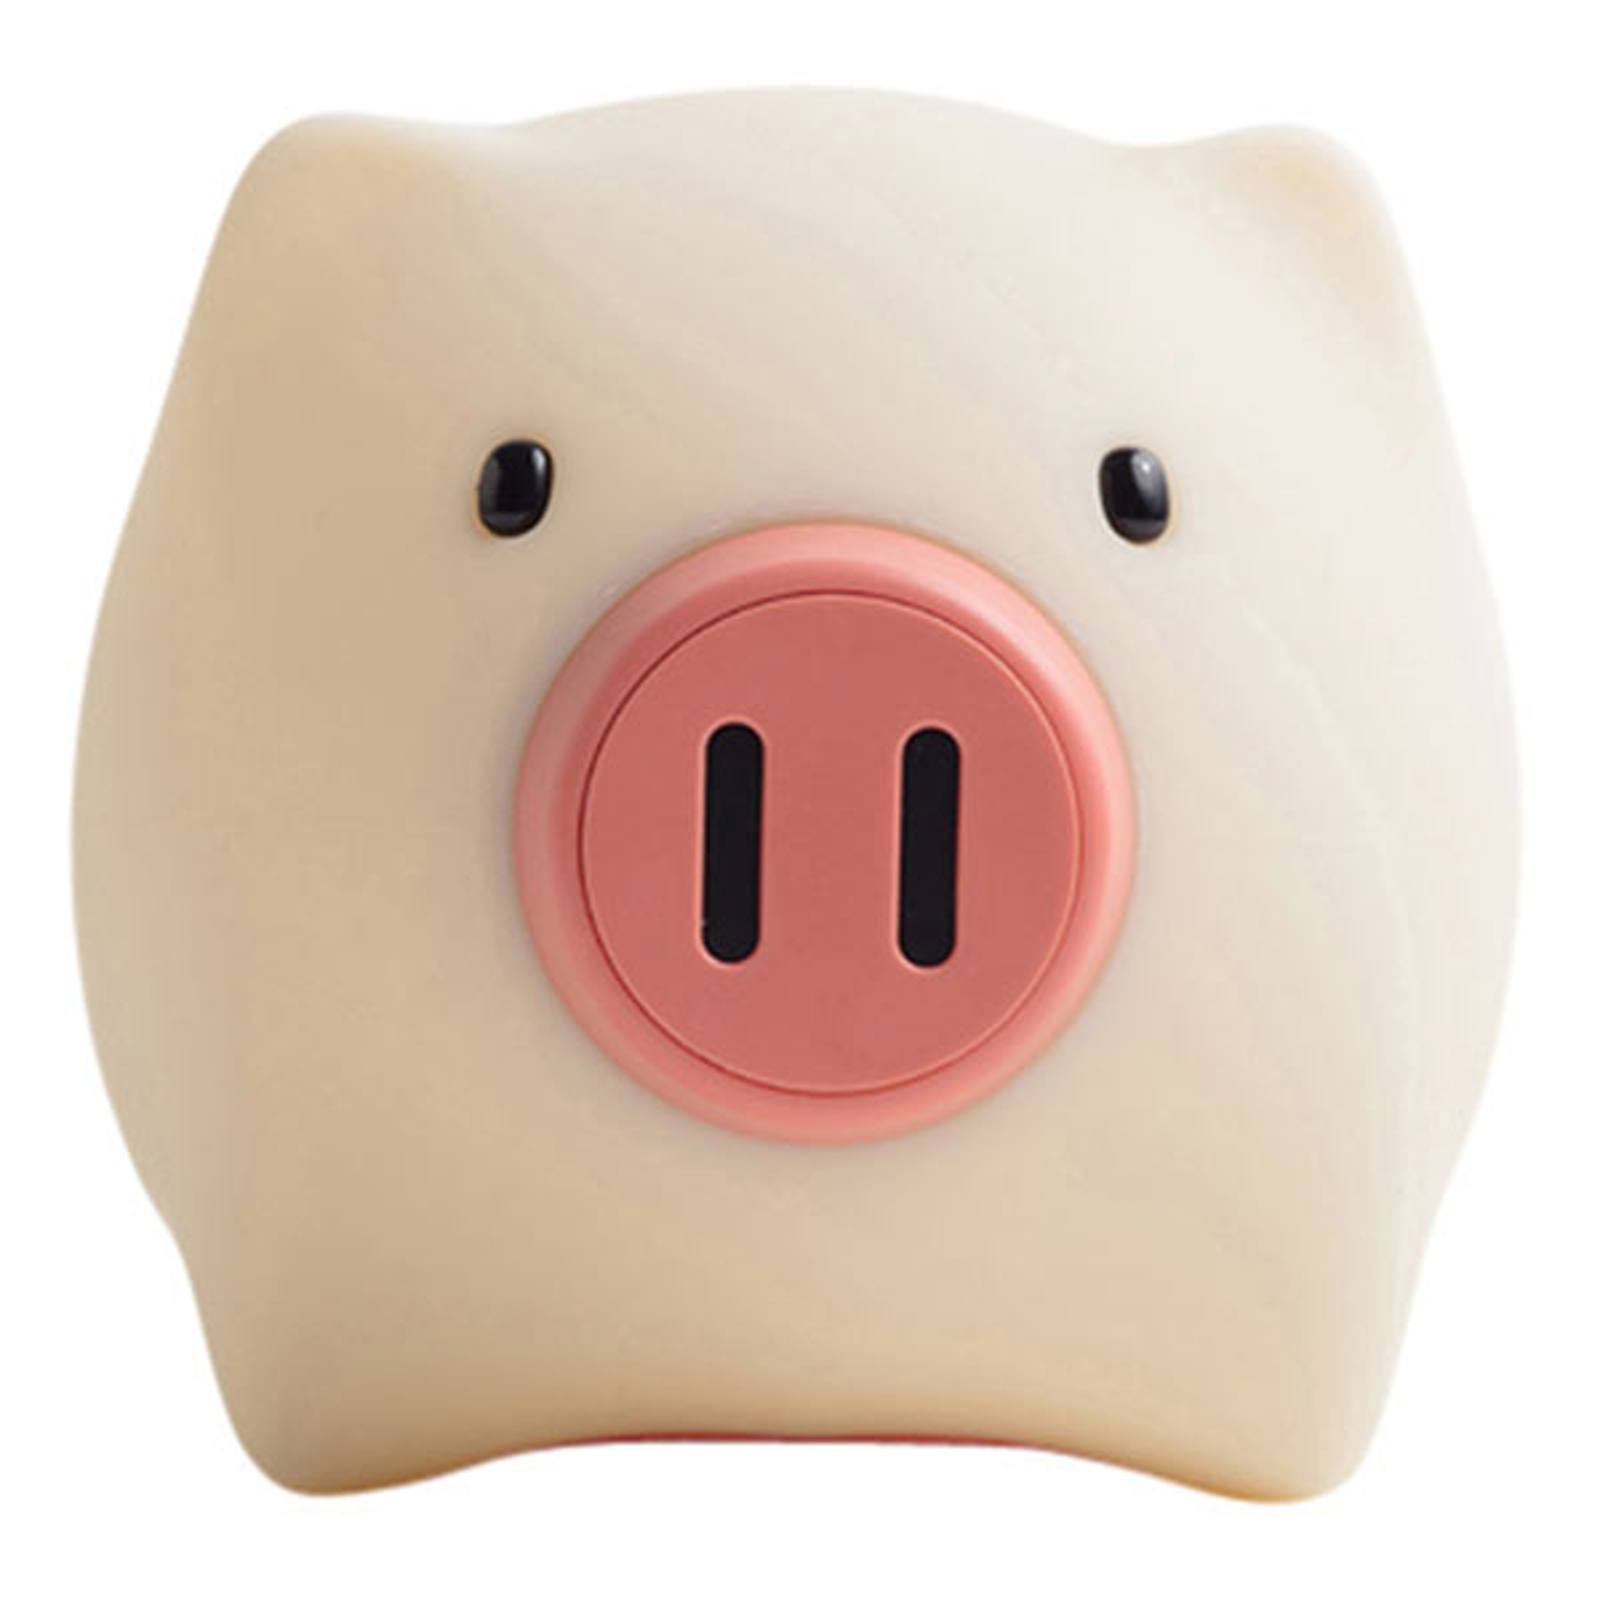 Piggy Pig LED night light with battery_5400364_1